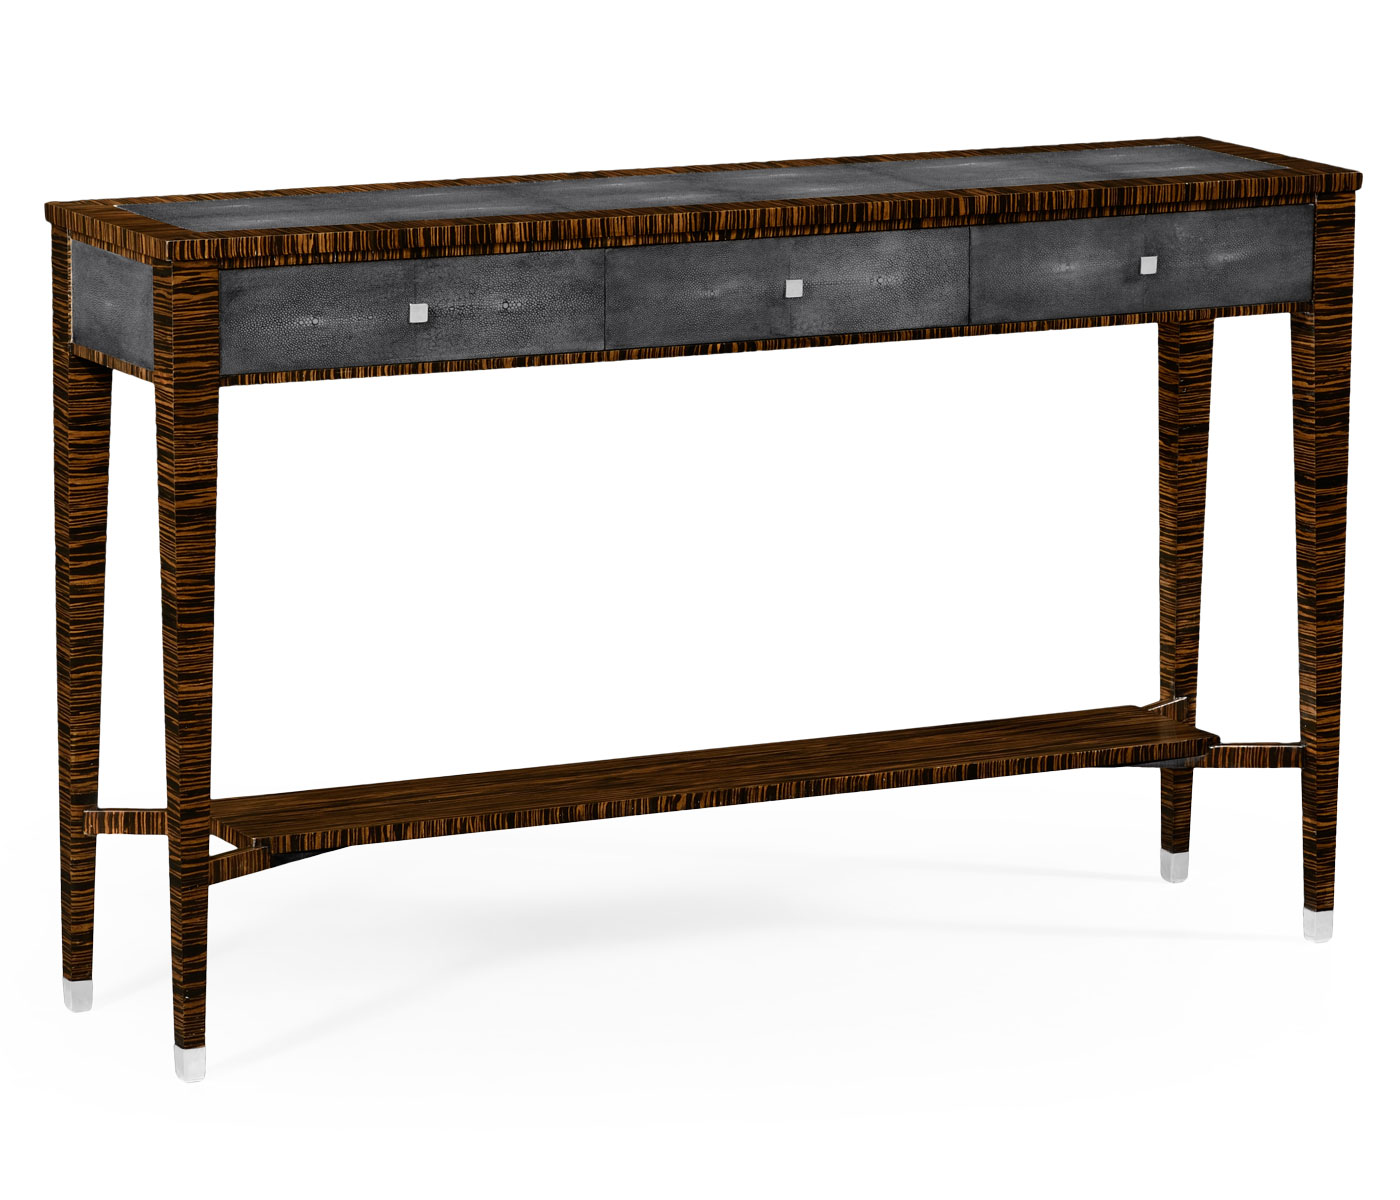 Macassar ebony anthracite shagreen console faux macassar ebony anthracite shagreen console geotapseo Image collections